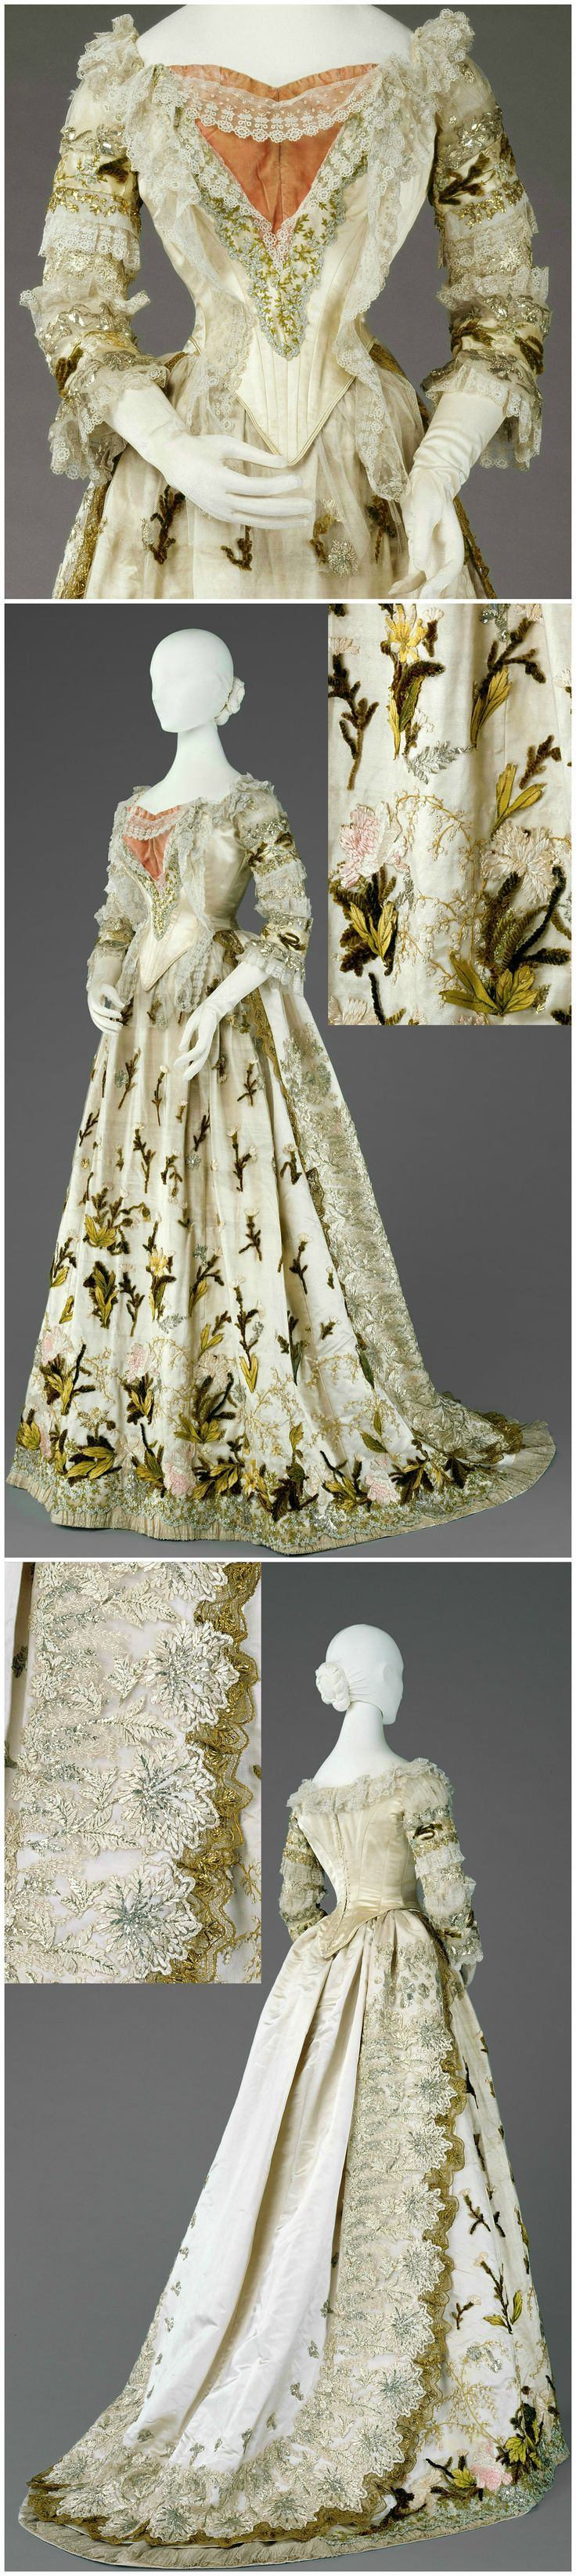 "Dress of light-coloured satin and silk tulle with chenille applications, made by Fanny Scheiner, 1875/85. Belonged to Empress Elisabeth (""Sisi""). Collection of Imperial Carriage Museum / Kunsthistorisches Museum, via Google Cultural Institute."